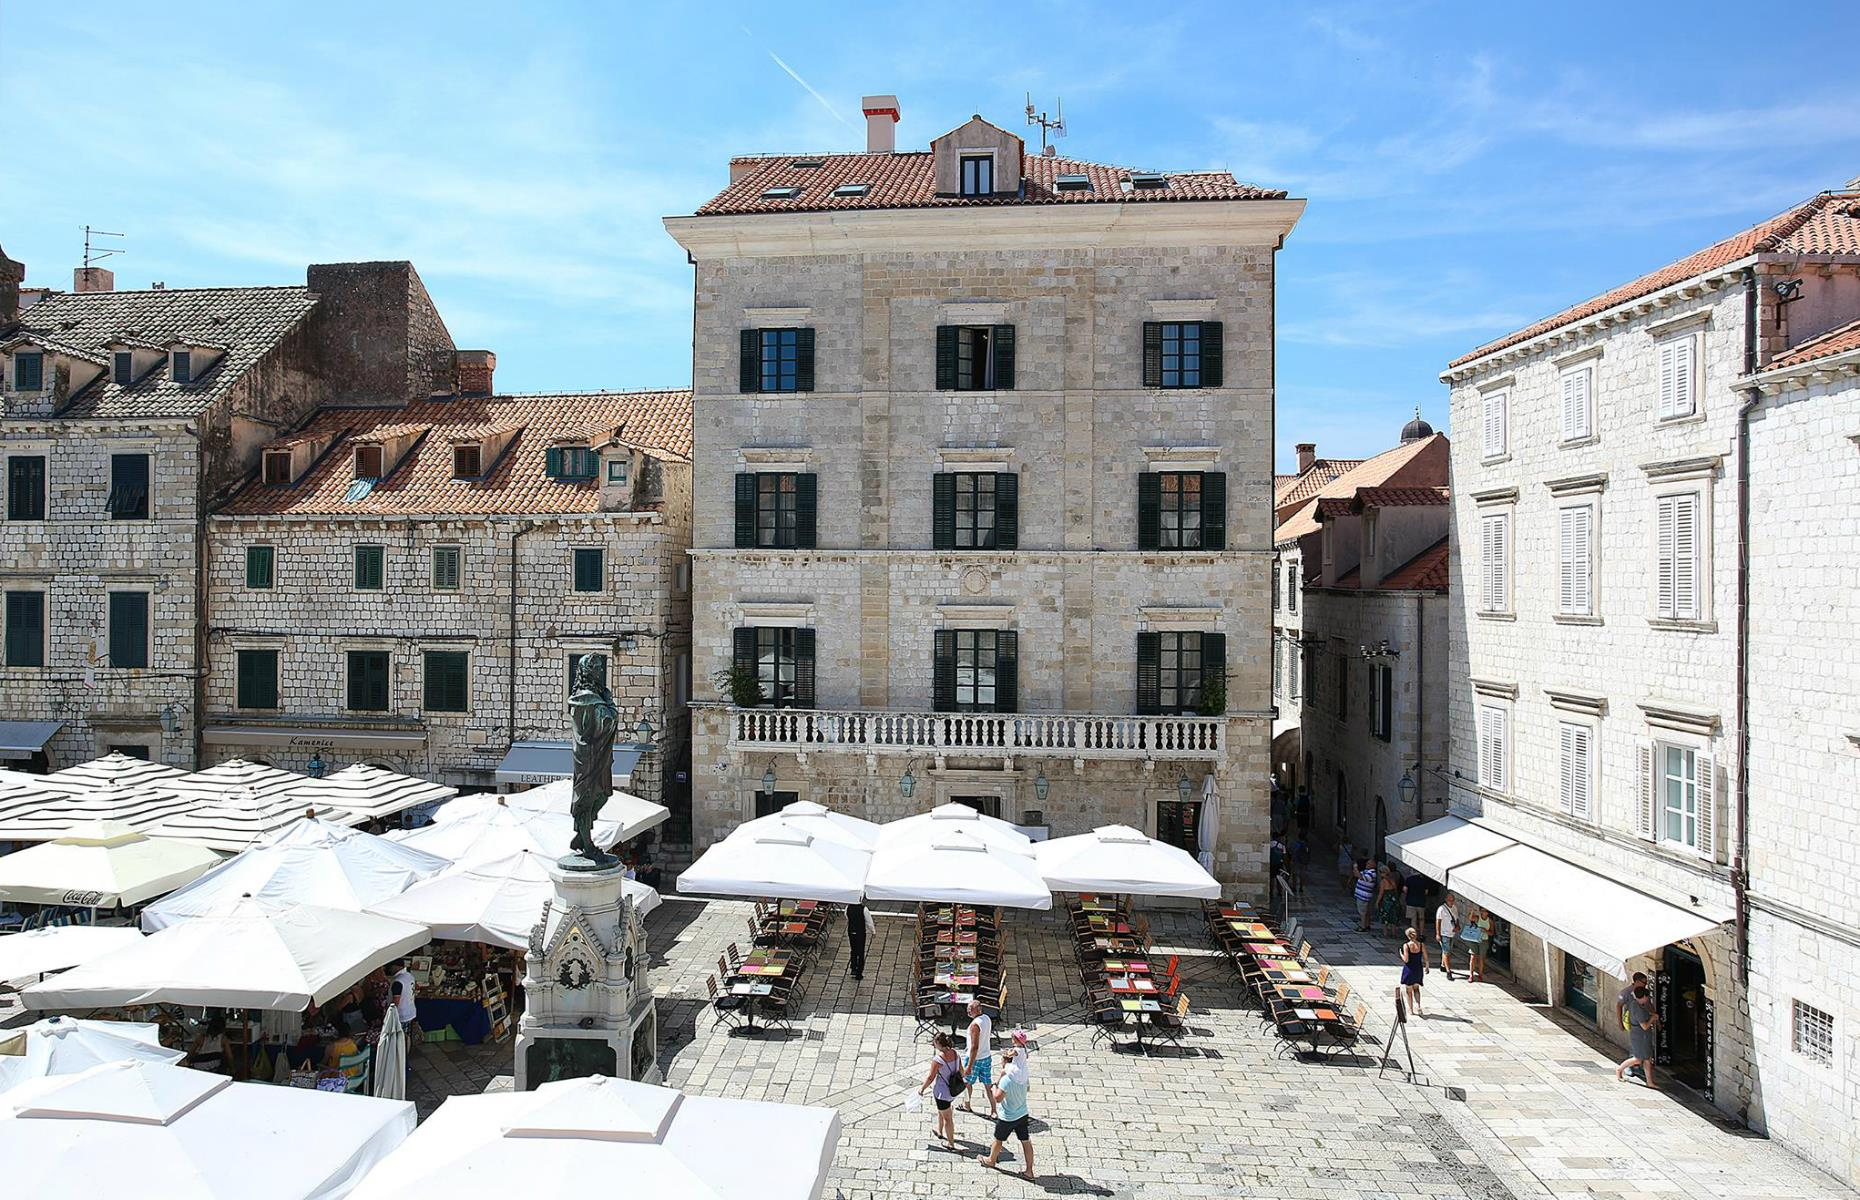 Slide 27 of 41: Set on Gundulić Square in Dubrovnik's charming old town, this grand 17th-century mansion was once the home of a local wealthy nobleman. Today it's one of the seaside city's grandest hotels, tucked in an enviable location amid Dubrovnik's medieval walls and wide marble streets.